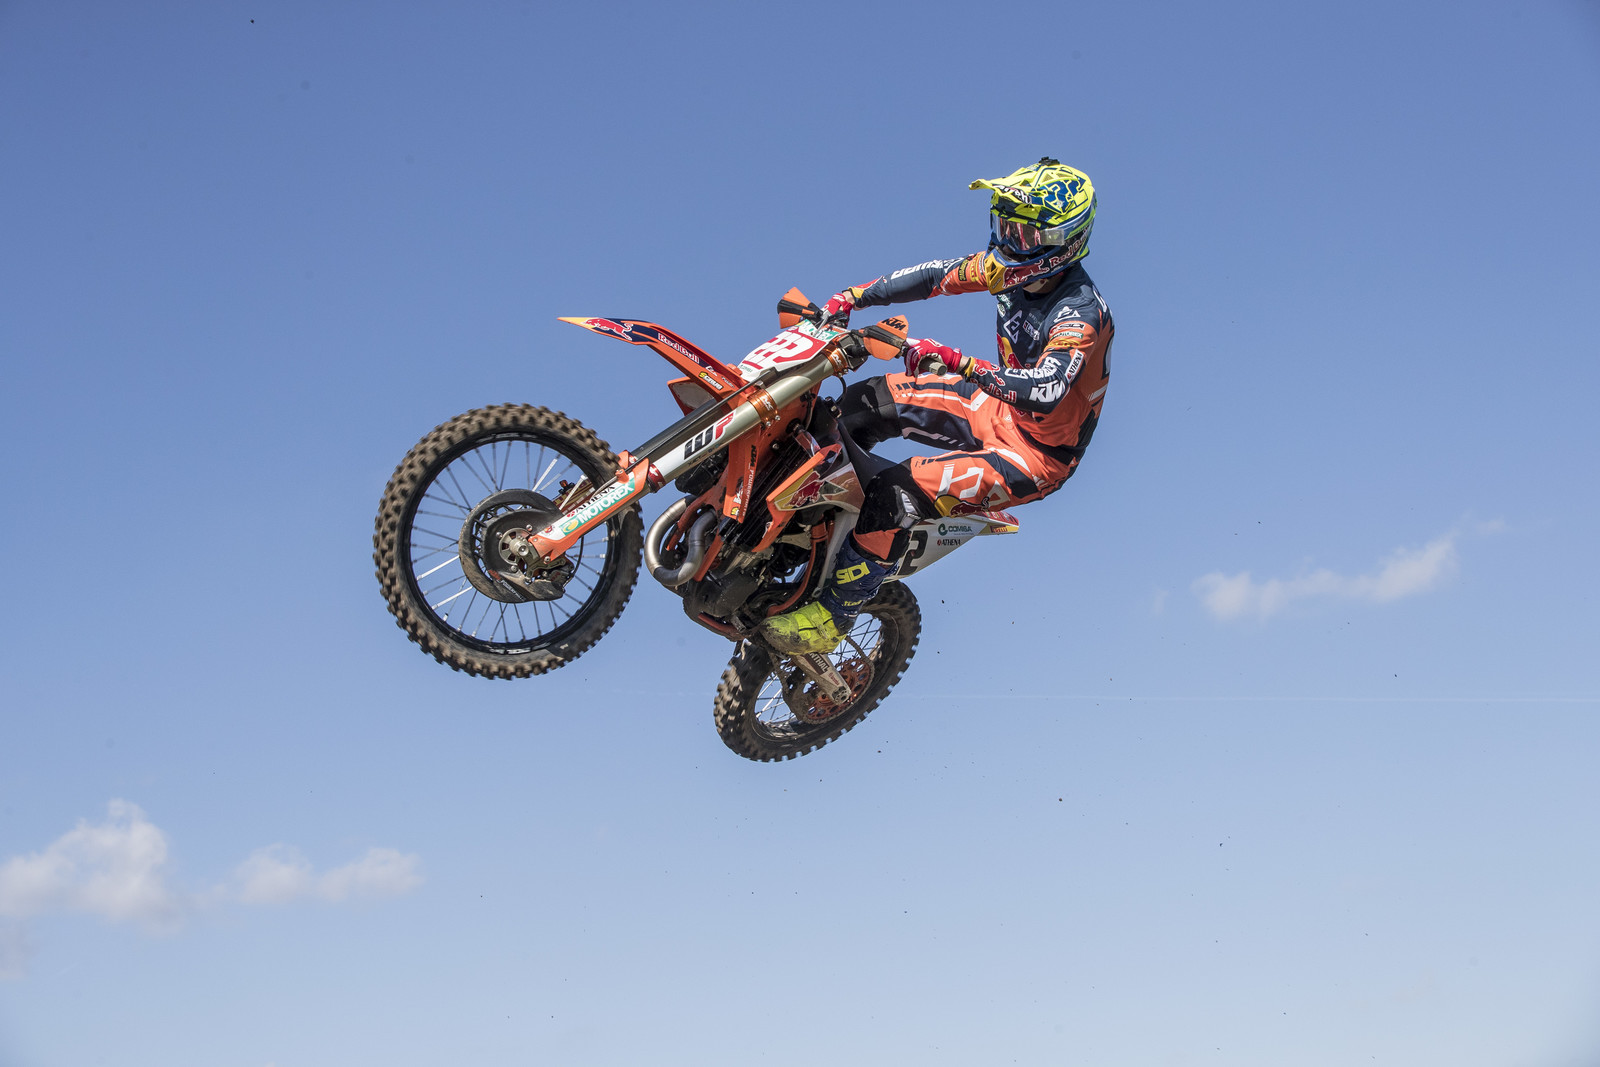 Red Bull KTM's Tony Cairoli pulled down a 1 - 2 to get the overall victory. Two holeshots and mistake-free riding was his game.